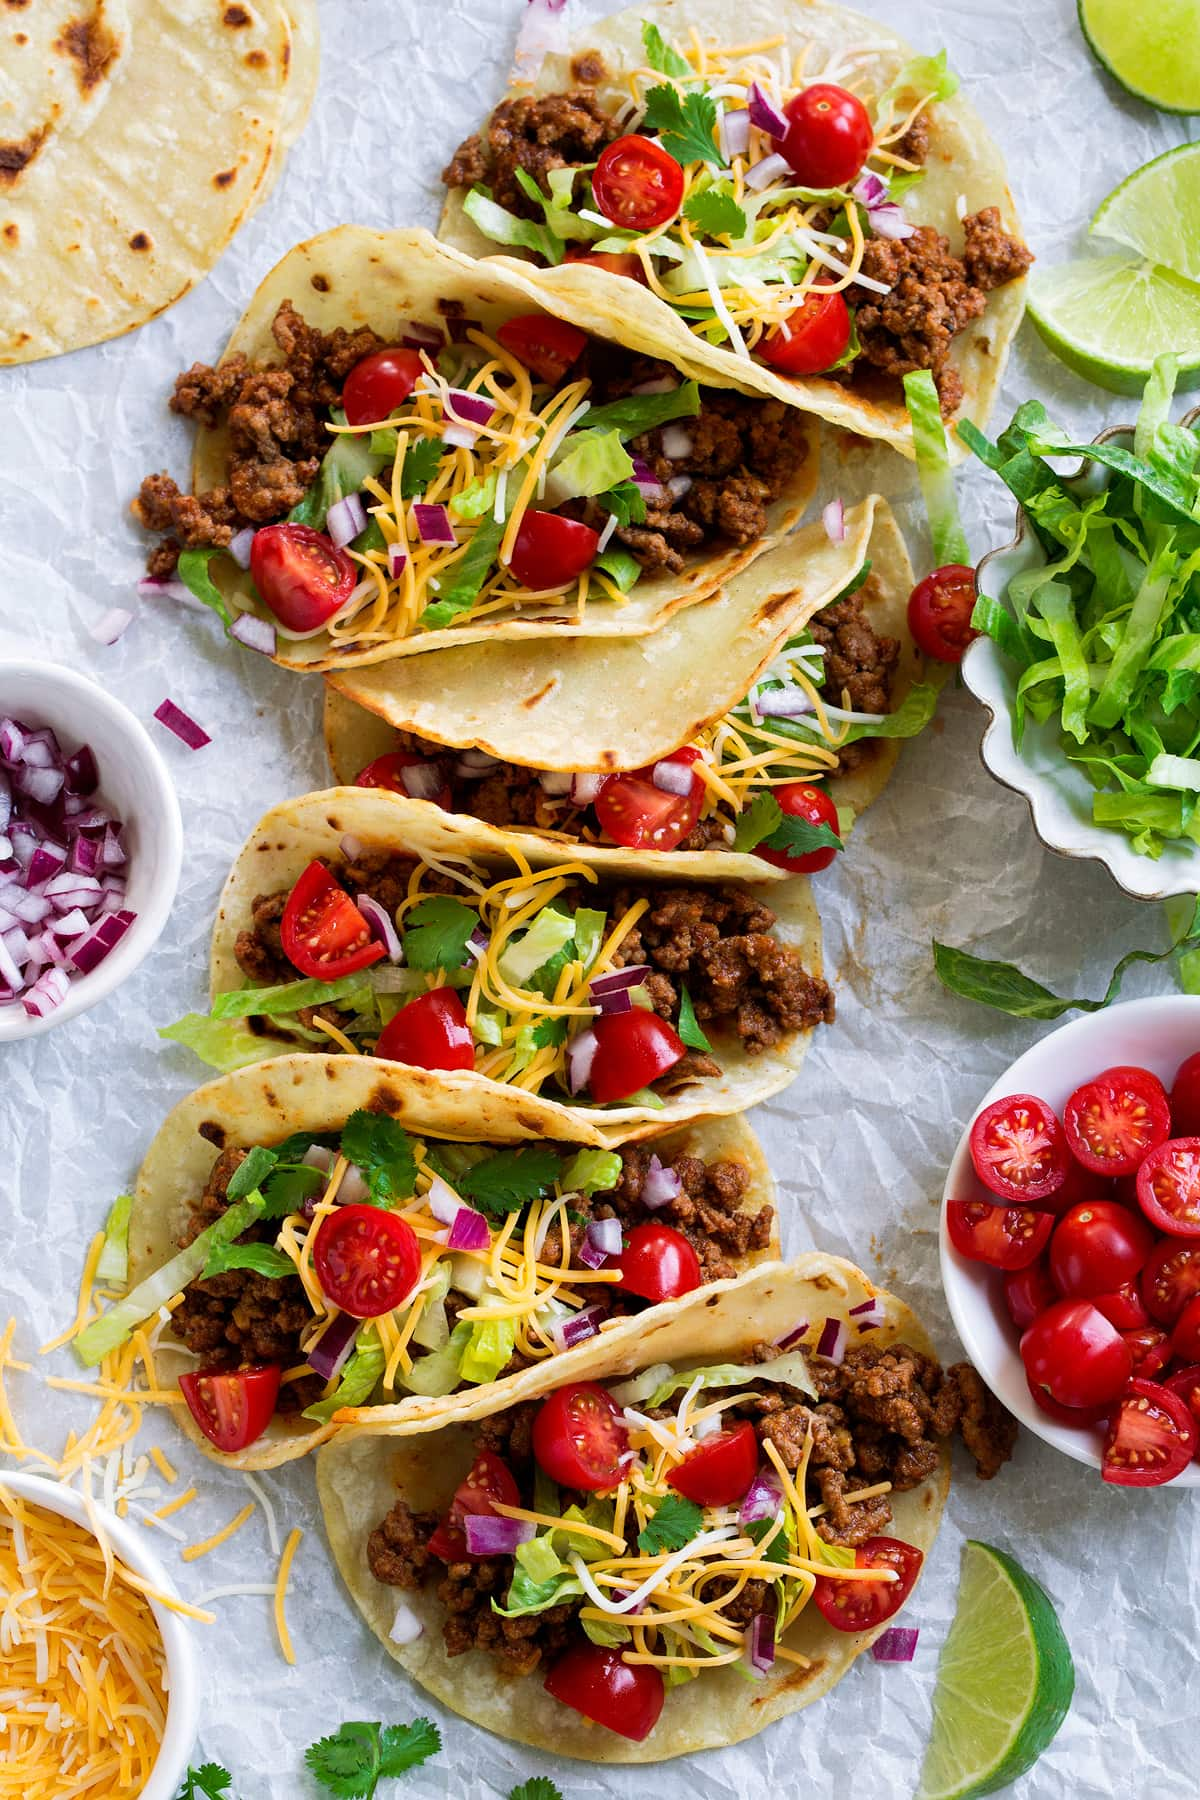 Long row of ground beef tacos on parchment paper finished with fresh toppings.